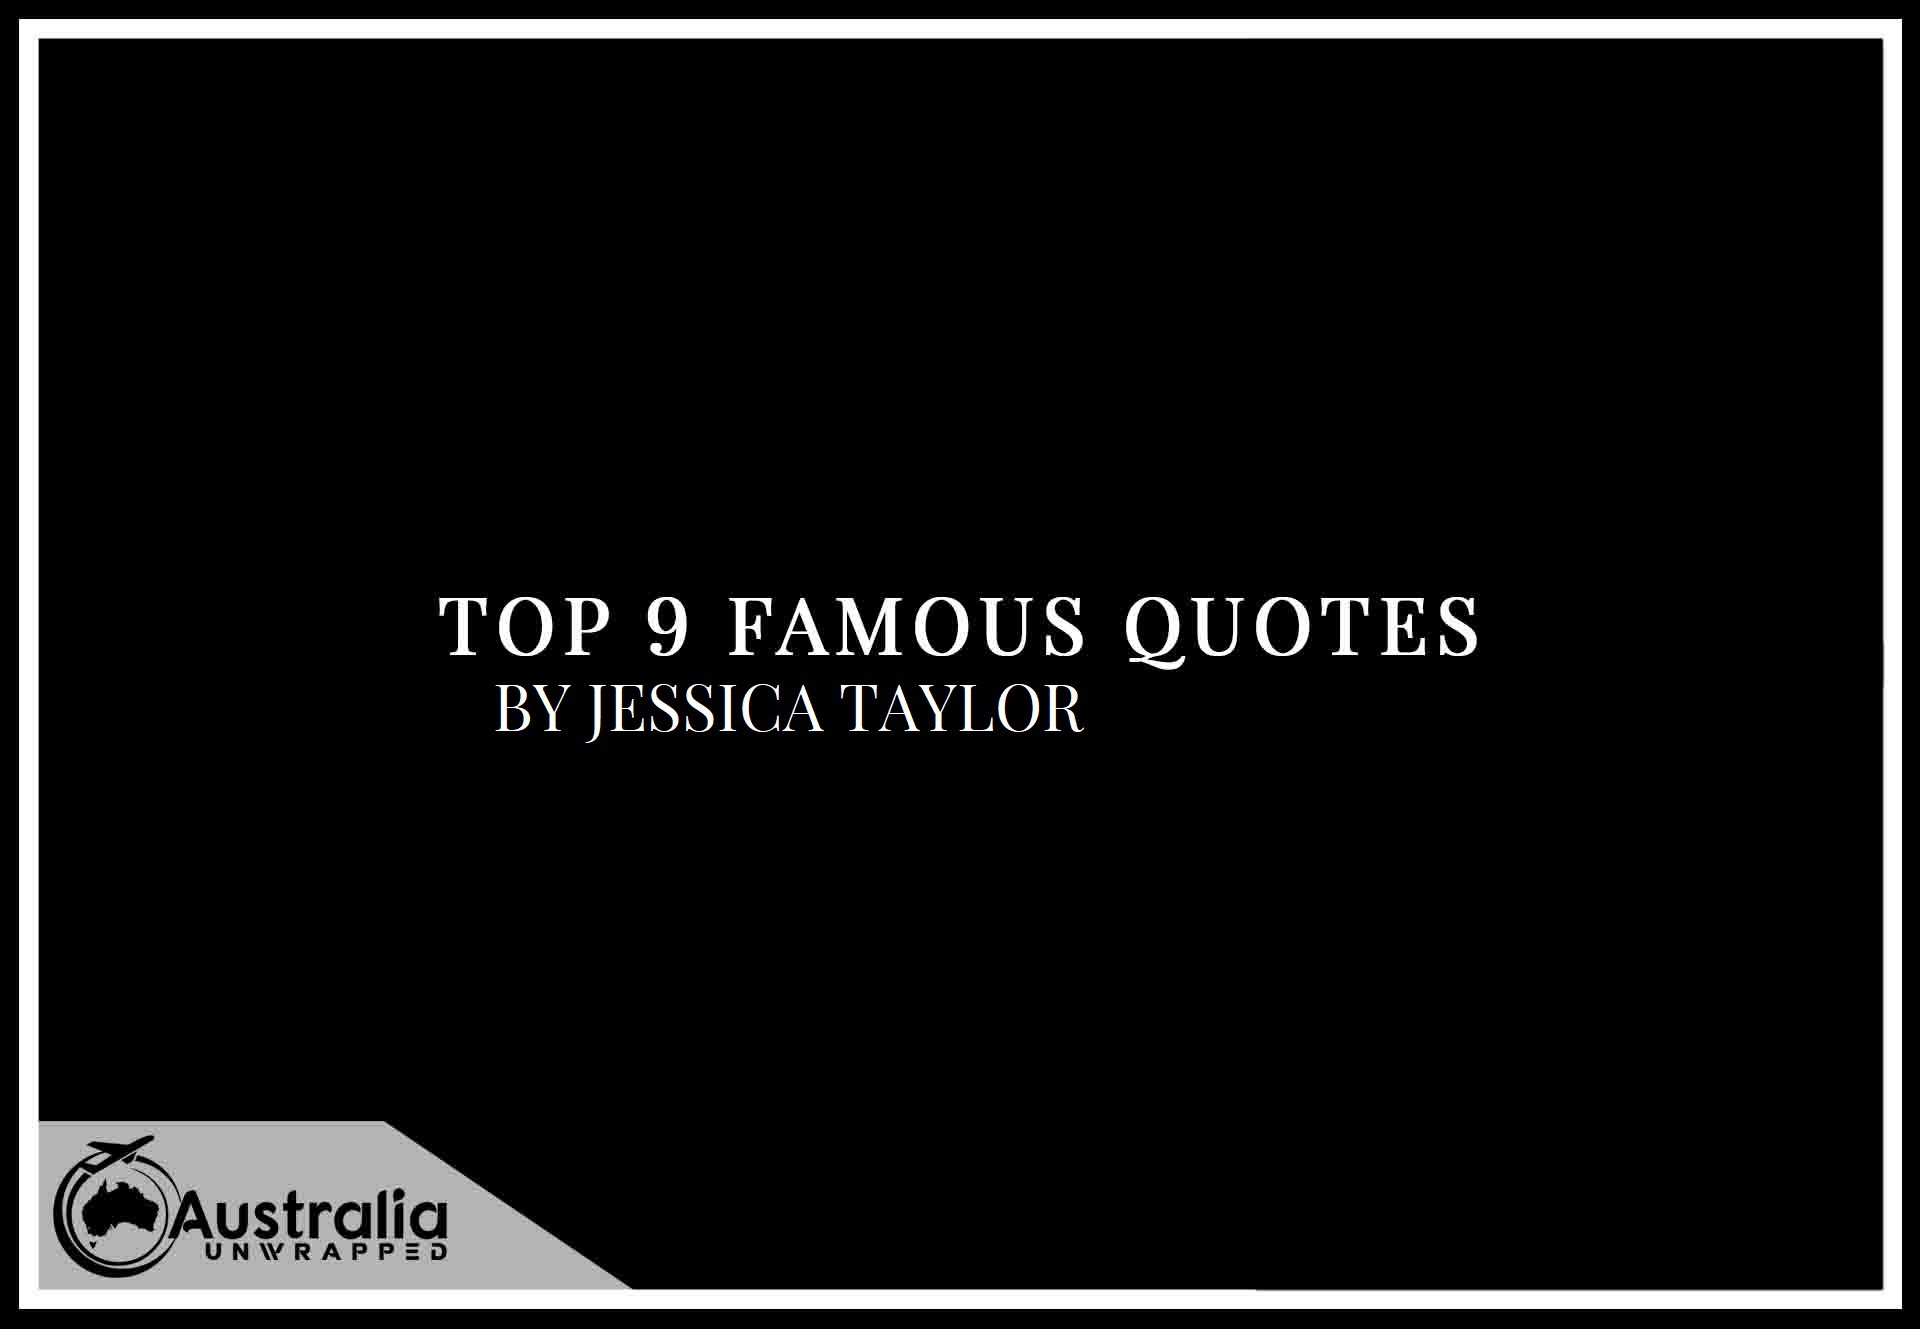 Top 9 Famous Quotes by Author Jessica Taylor